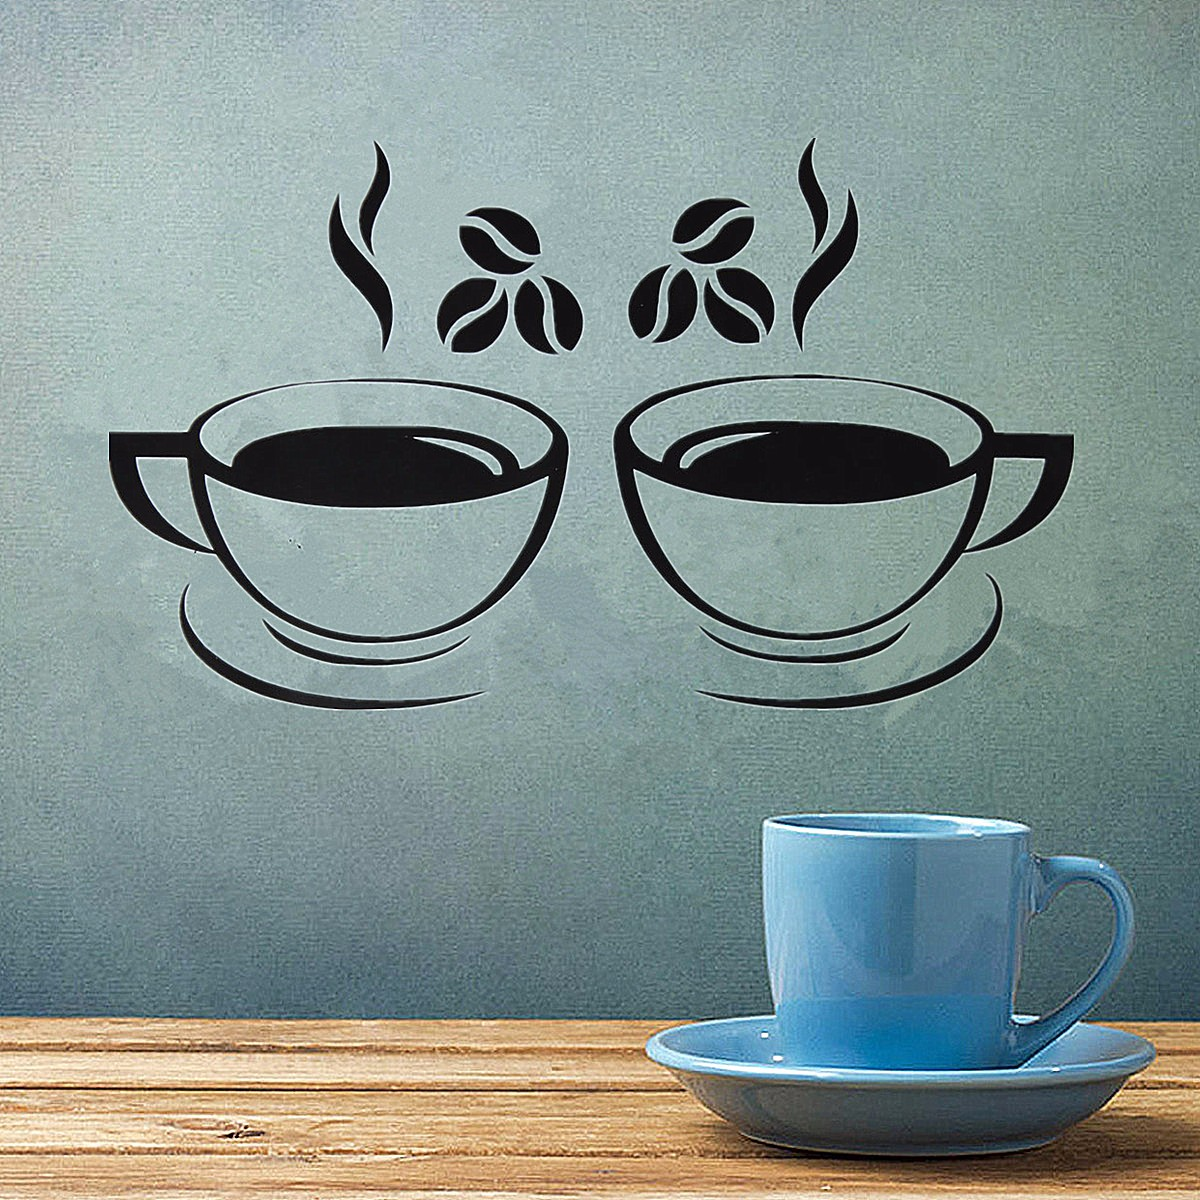 2 Coffee Kitchen & Dining Cups Kitchen Wall Stickers Art Vinyl Decal Restaurant Pub Cafe Home Decor Waterproof